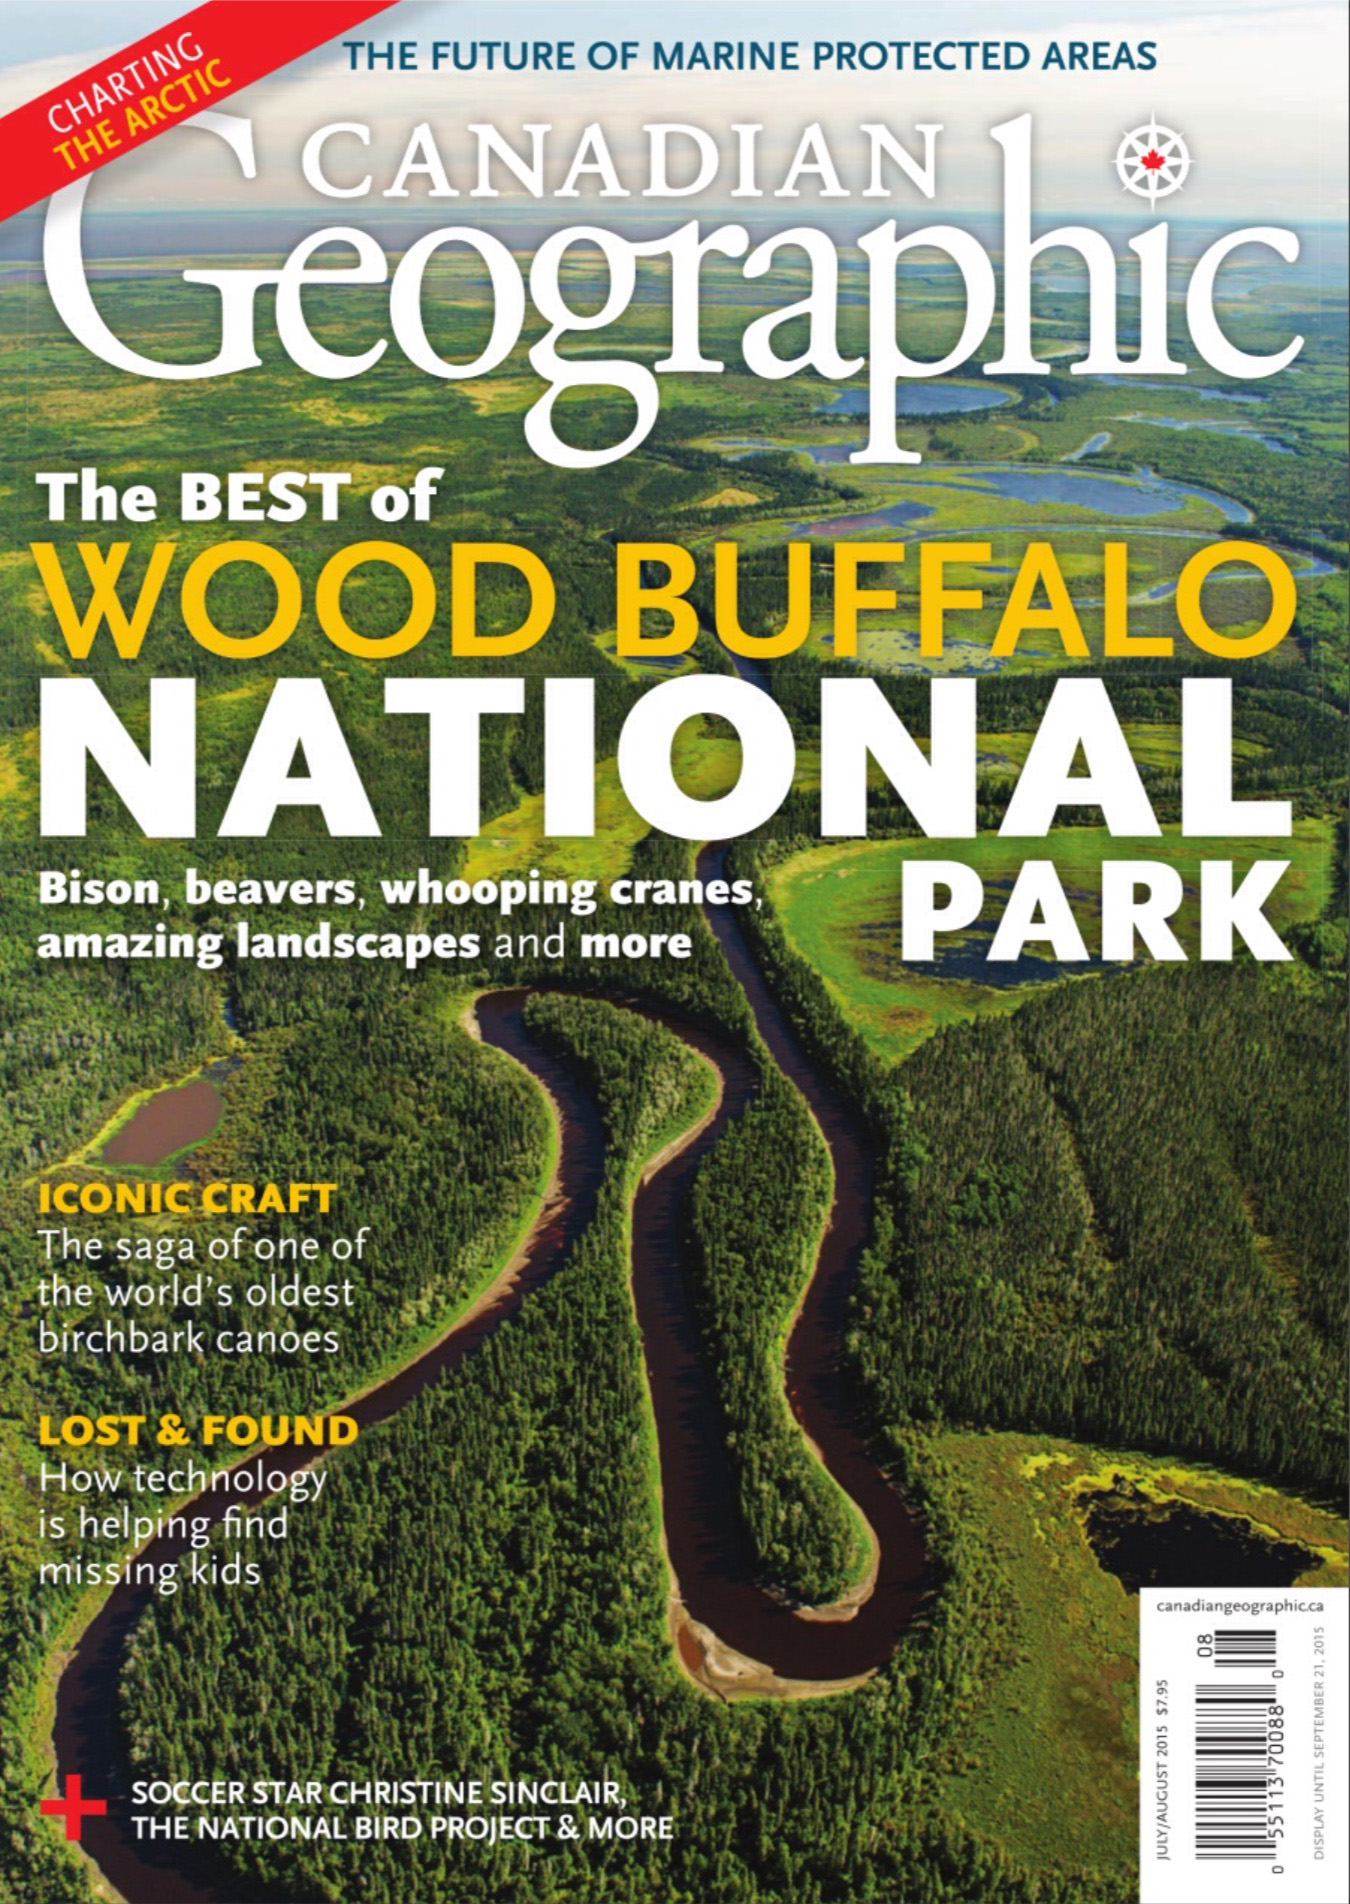 Colangelo-Canadian_Geographic-Wood_Buffalo_National_Park